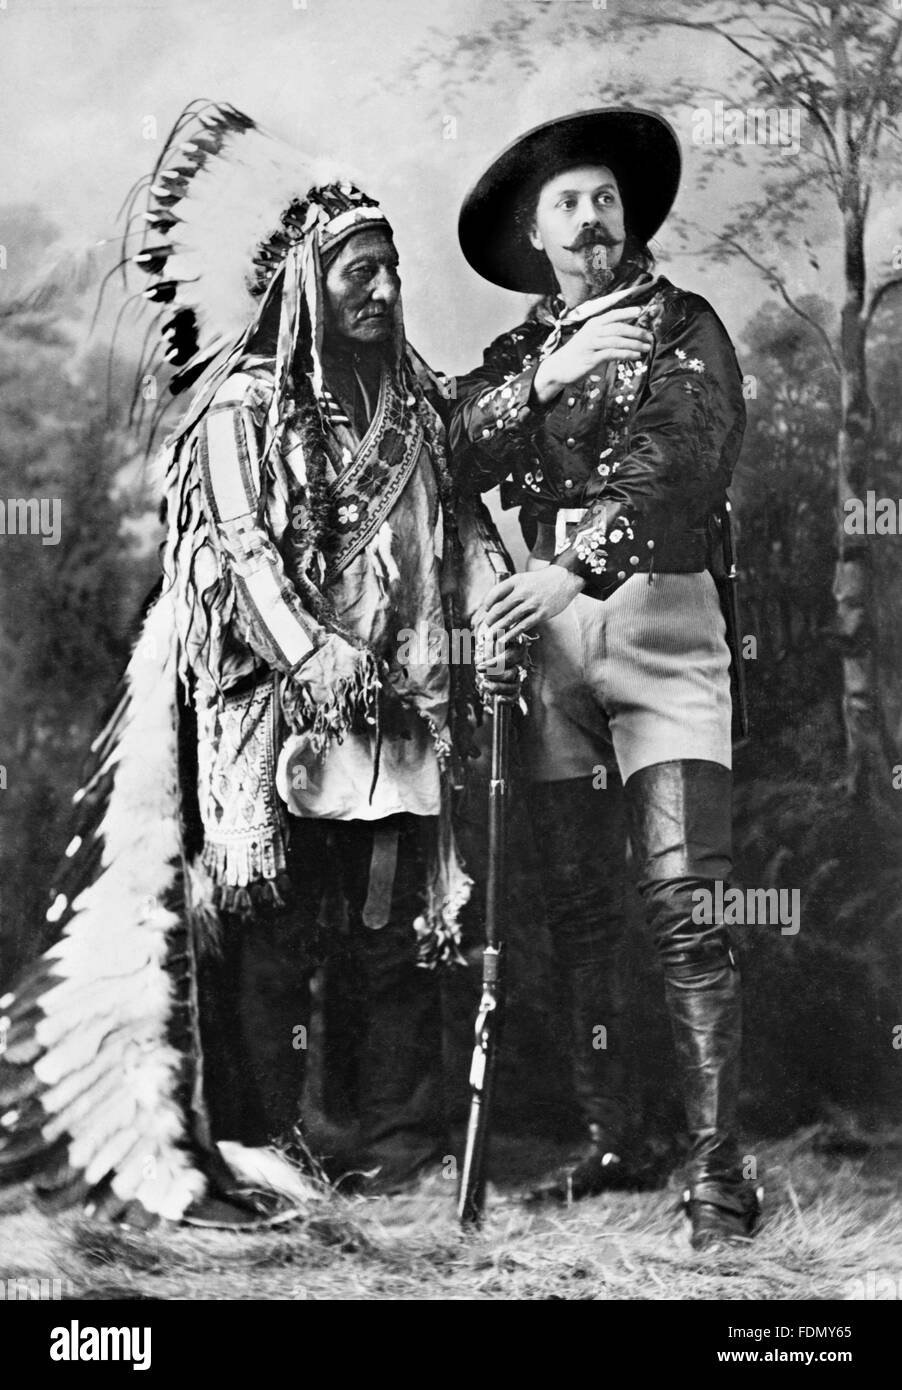 Buffalo Bill Wild West Show. Sitting Bull, a Hunkpapa Lakota holy man and leader, largely responsible for the defeat Stock Photo